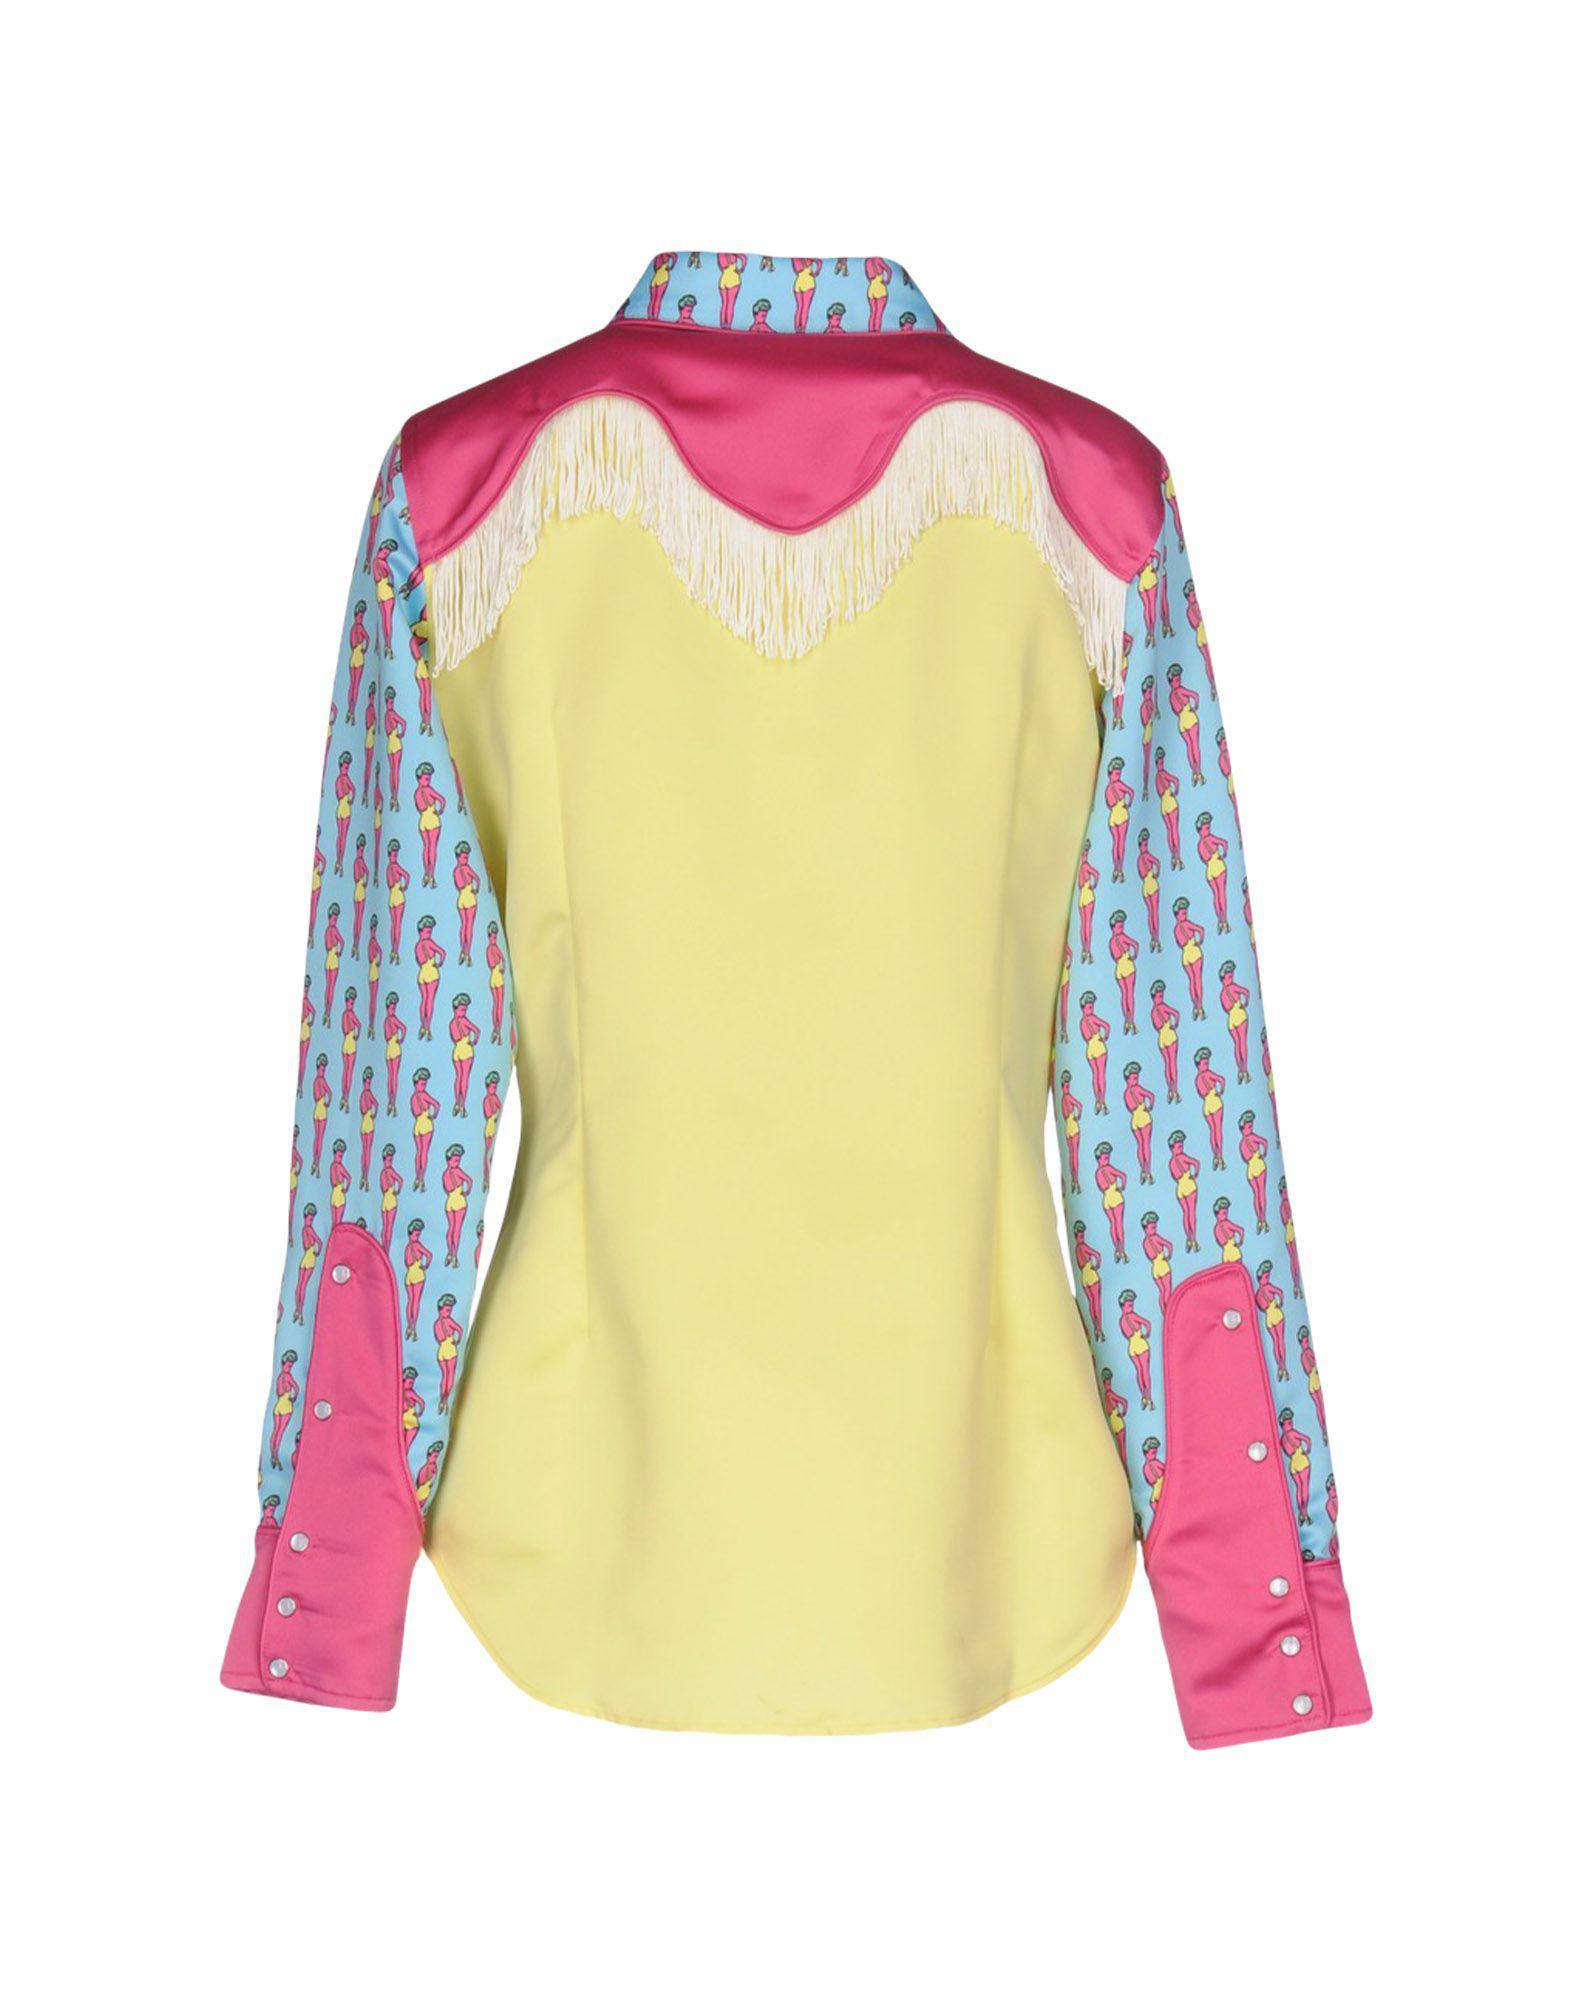 726bc77de1b1 Jeremy Scott Shirt in Yellow - Lyst